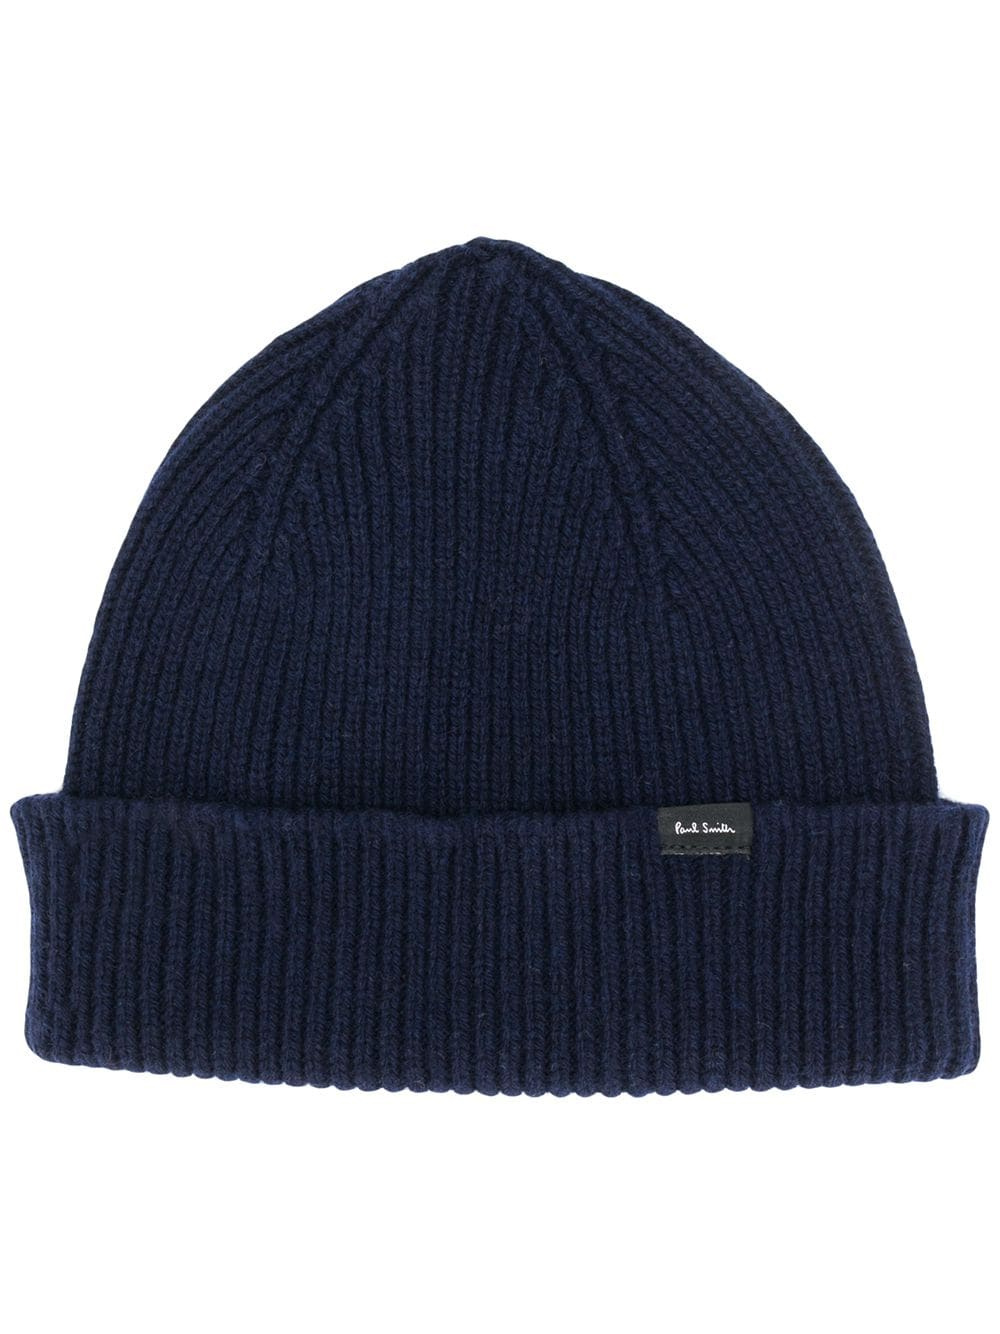 Berretto PAUL SMITH | Cappello | M1A-383E-AV23747